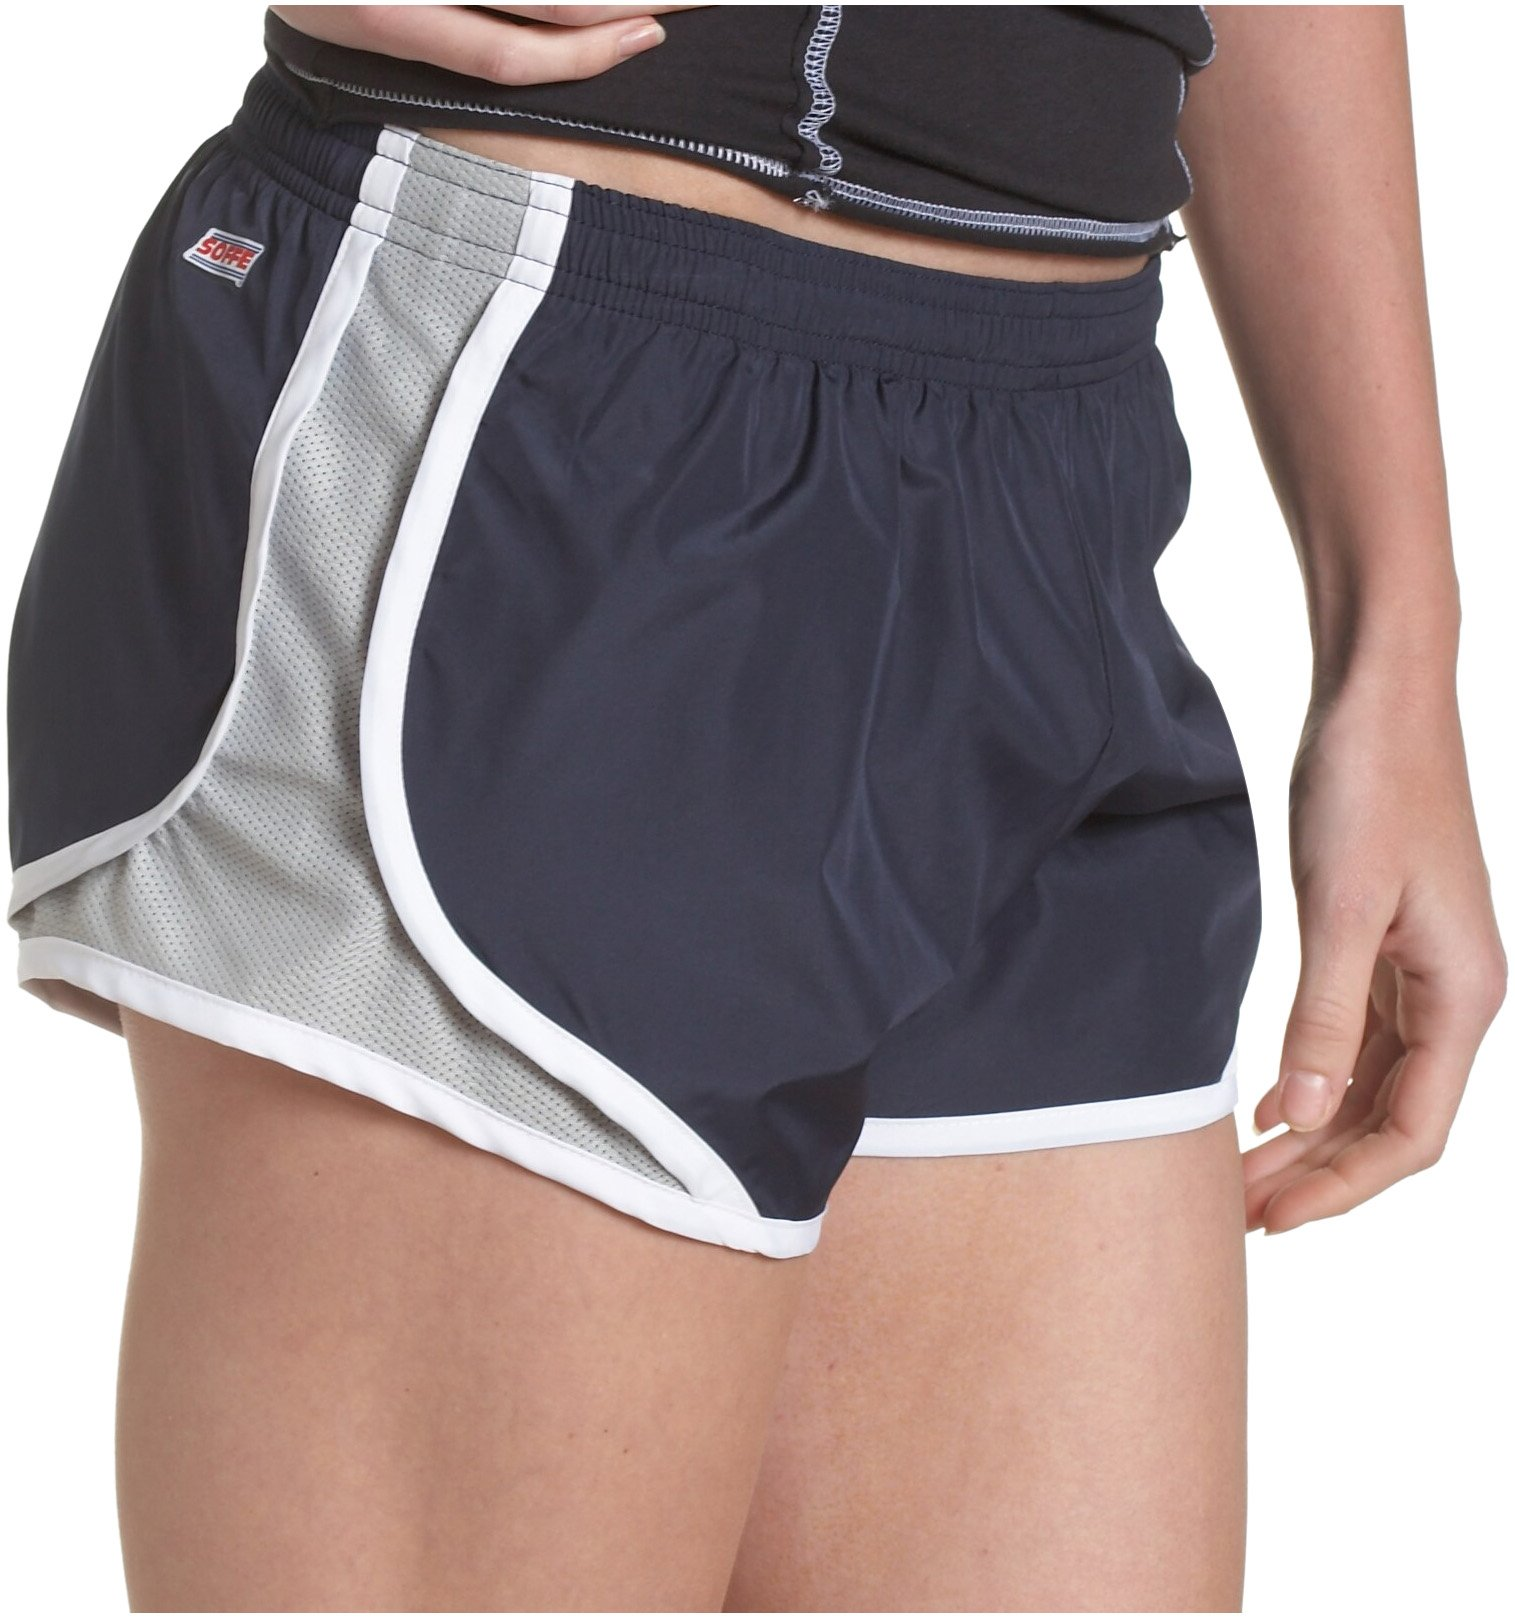 Soffe Women's Juniors' Team Shorty Shorts, Navy/Silver, Small by Soffe